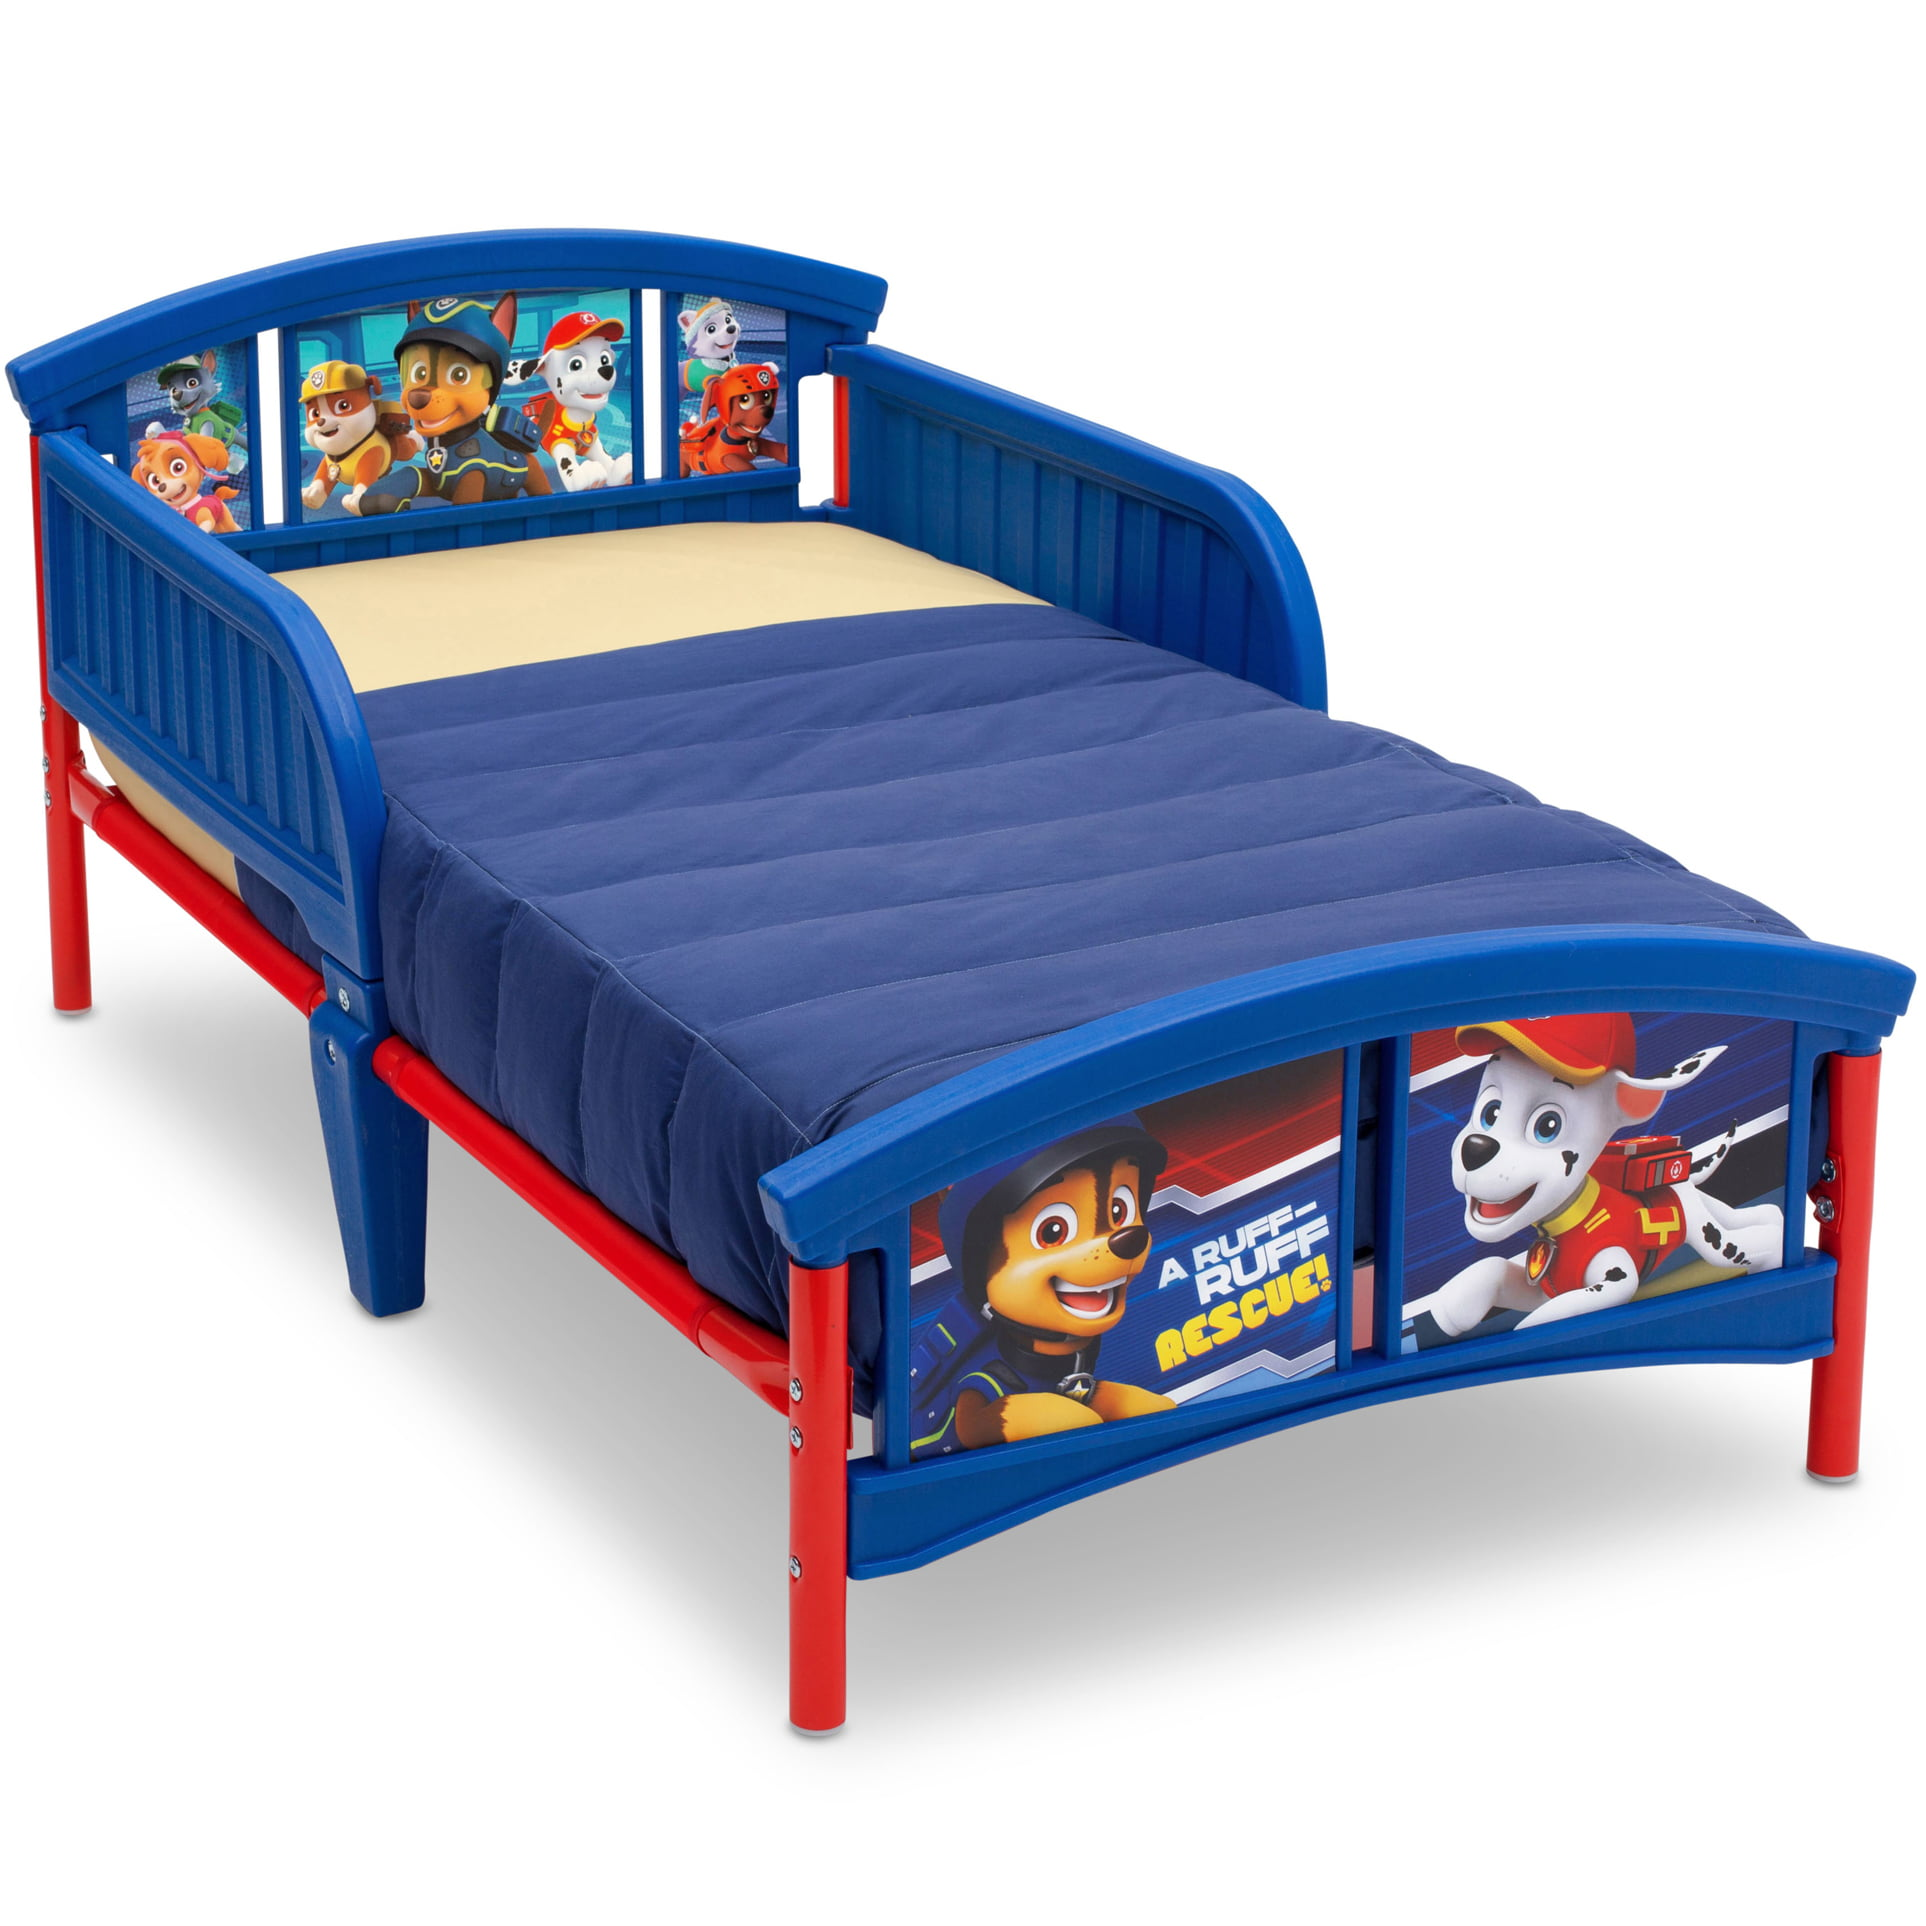 Character u0026 Novelty Toddler Beds  sc 1 st  Walmart.com & Toddler Beds - Walmart.com